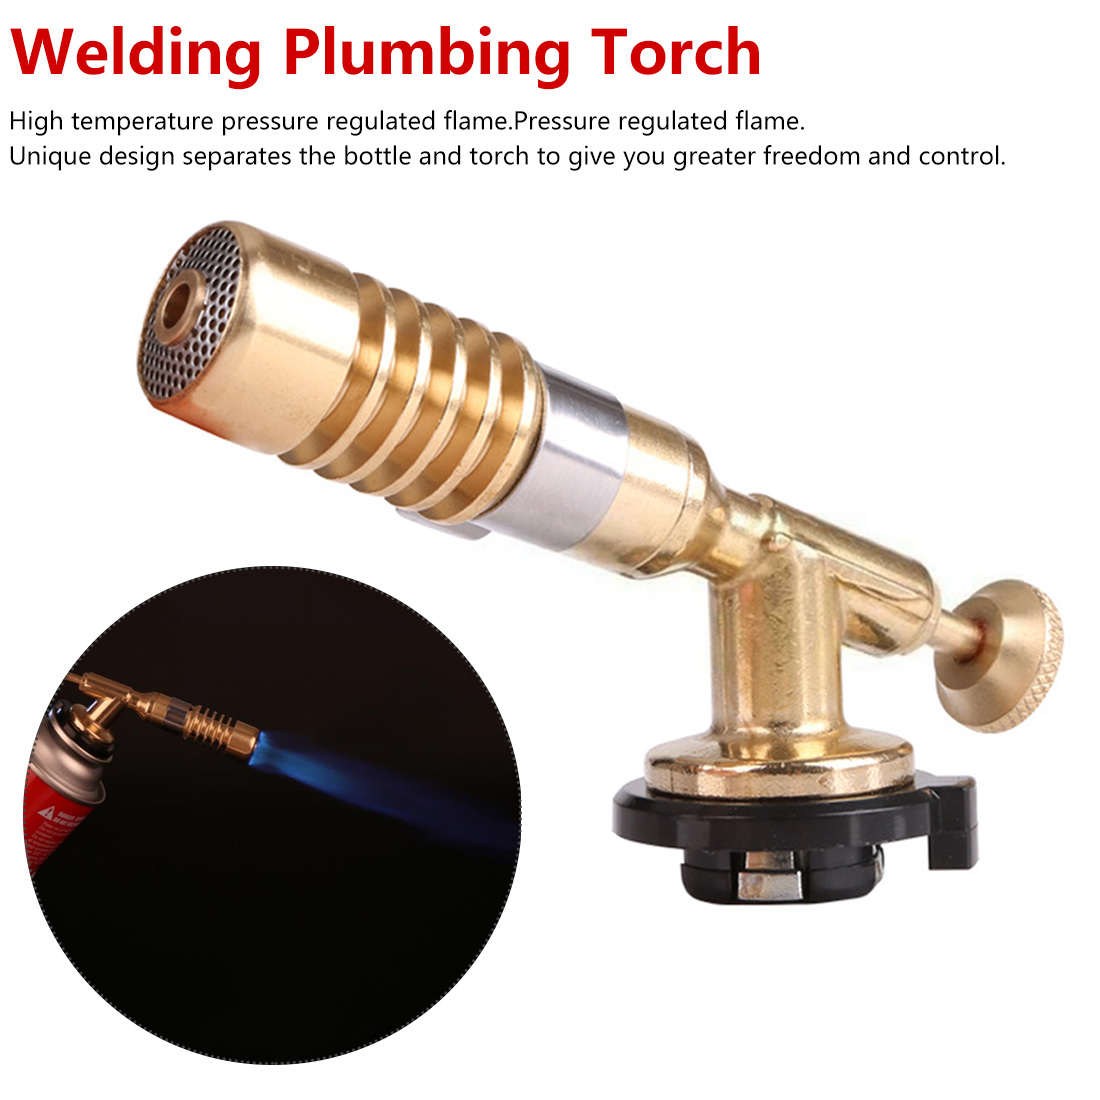 1300 C Flame Adjustable Temperature Brass Gas Turbo Torch Aluminum Brazing Propane Weld Plumbing